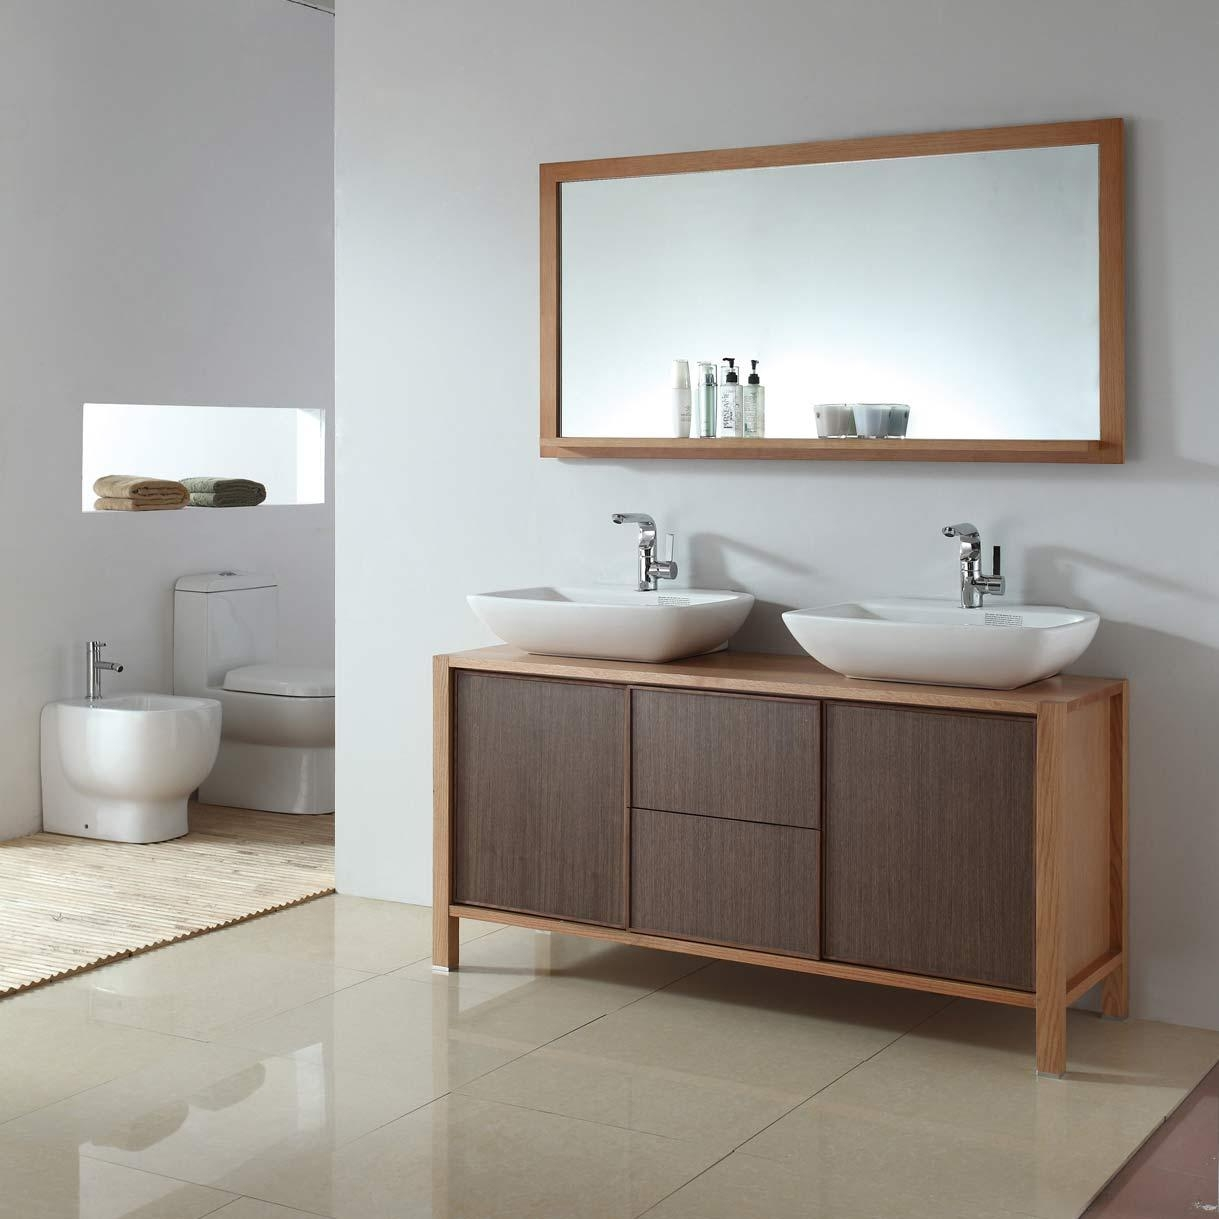 Use Bathroom Vanity Mirrors To Decorate Your Area – Tcg Throughout Bathroom Vanity Mirrors (Photo 14 of 20)